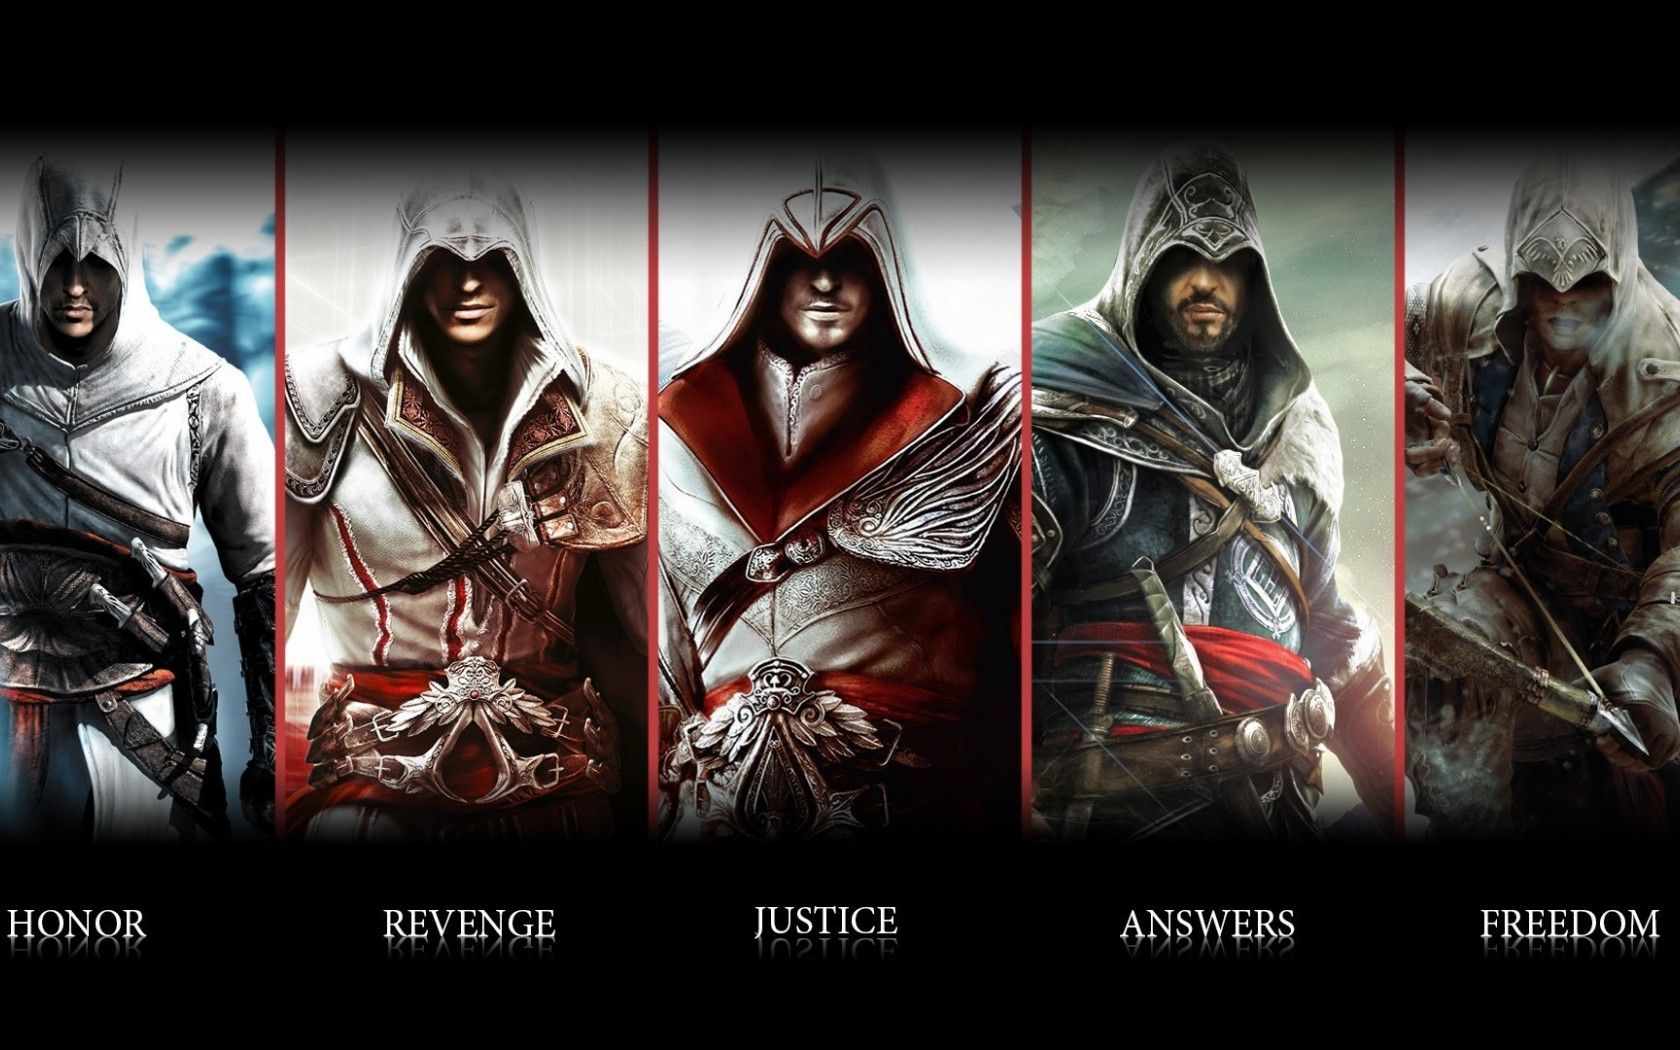 The Faces Of Assassin S Creed Assassin S Creed Wallpaper Assassin S Creed Brotherhood Assassin S Creed Hd